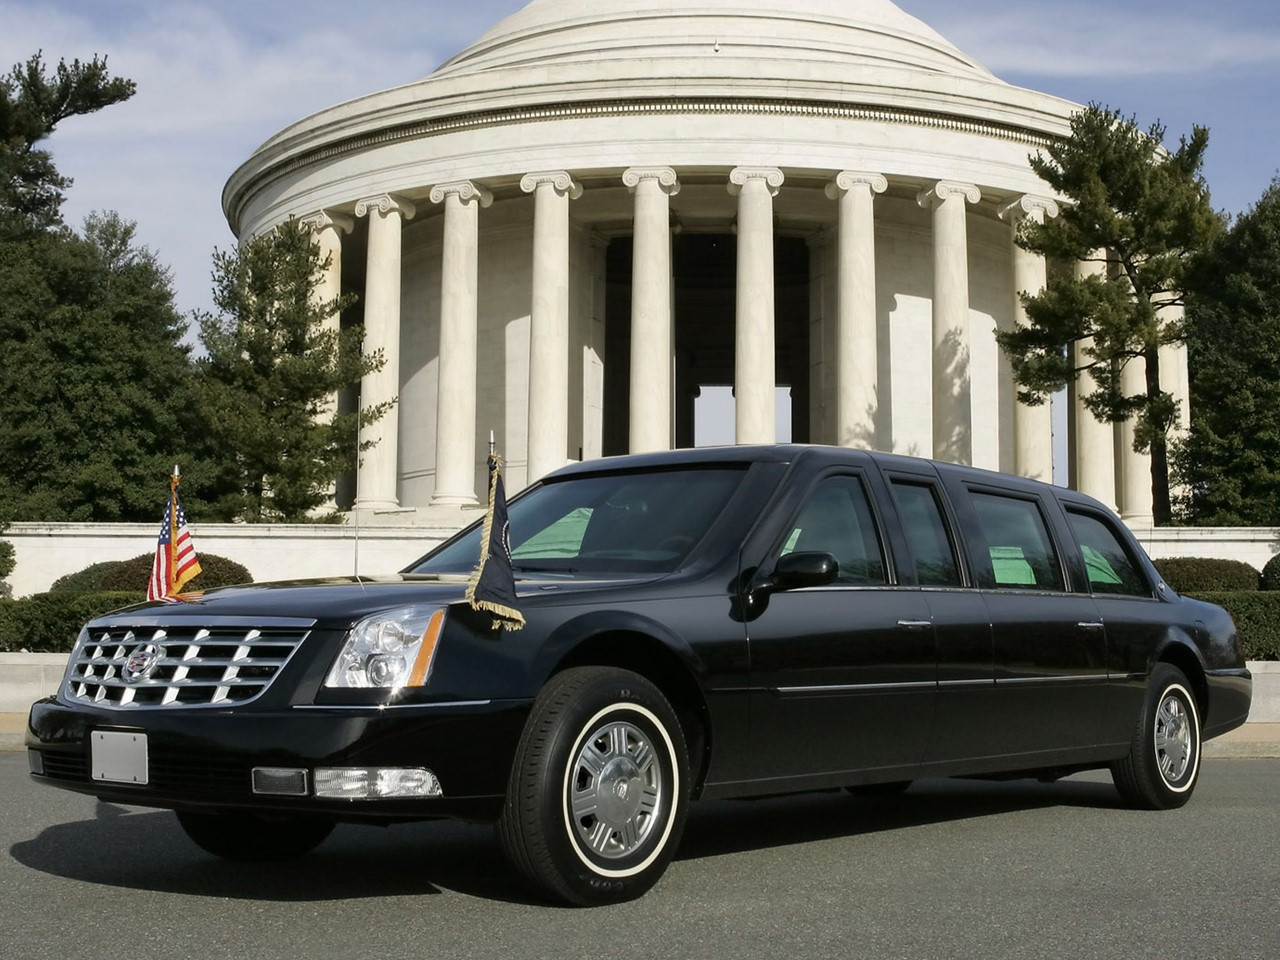 2006 DTS Presidential Limousine 3